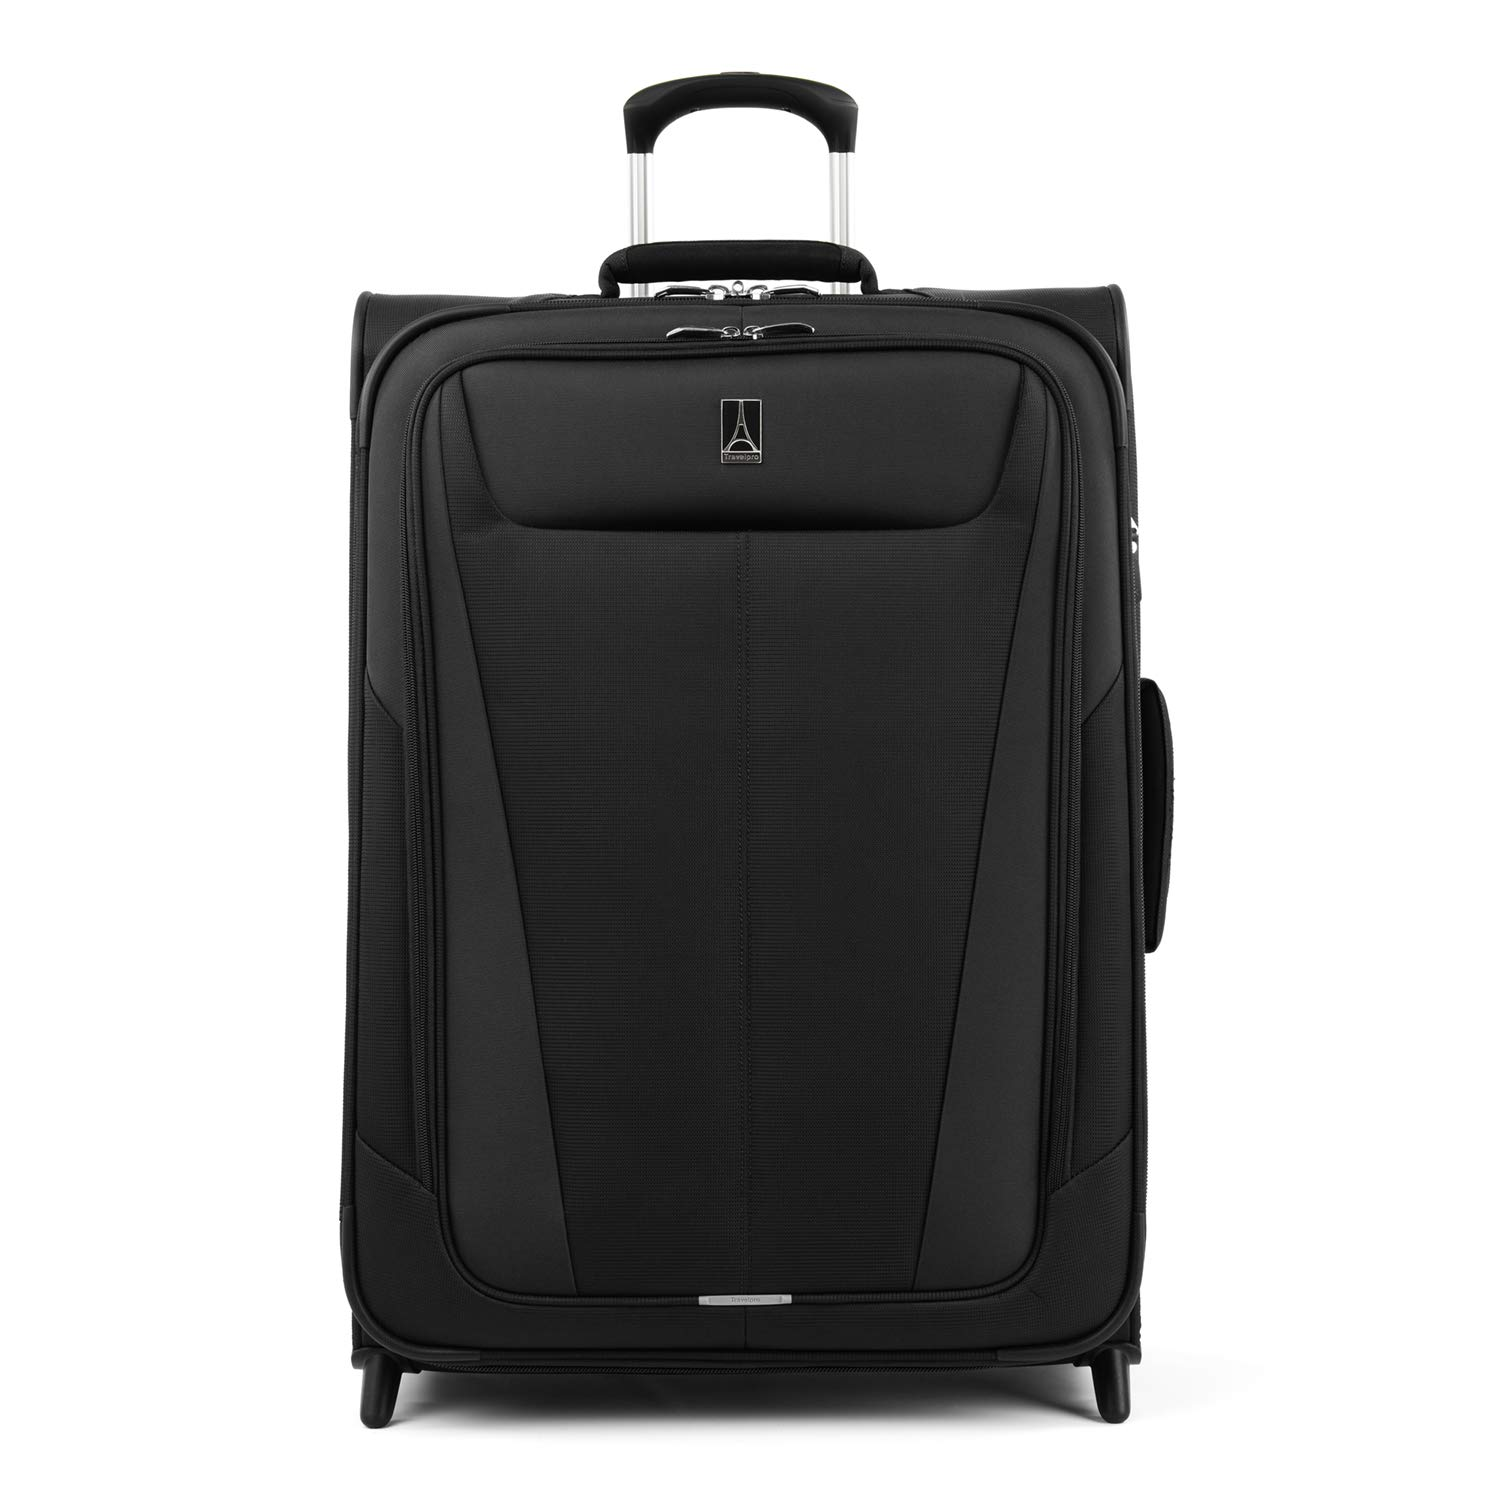 Travelpro Luggage Expandable Checked-Medium, Black by Travelpro